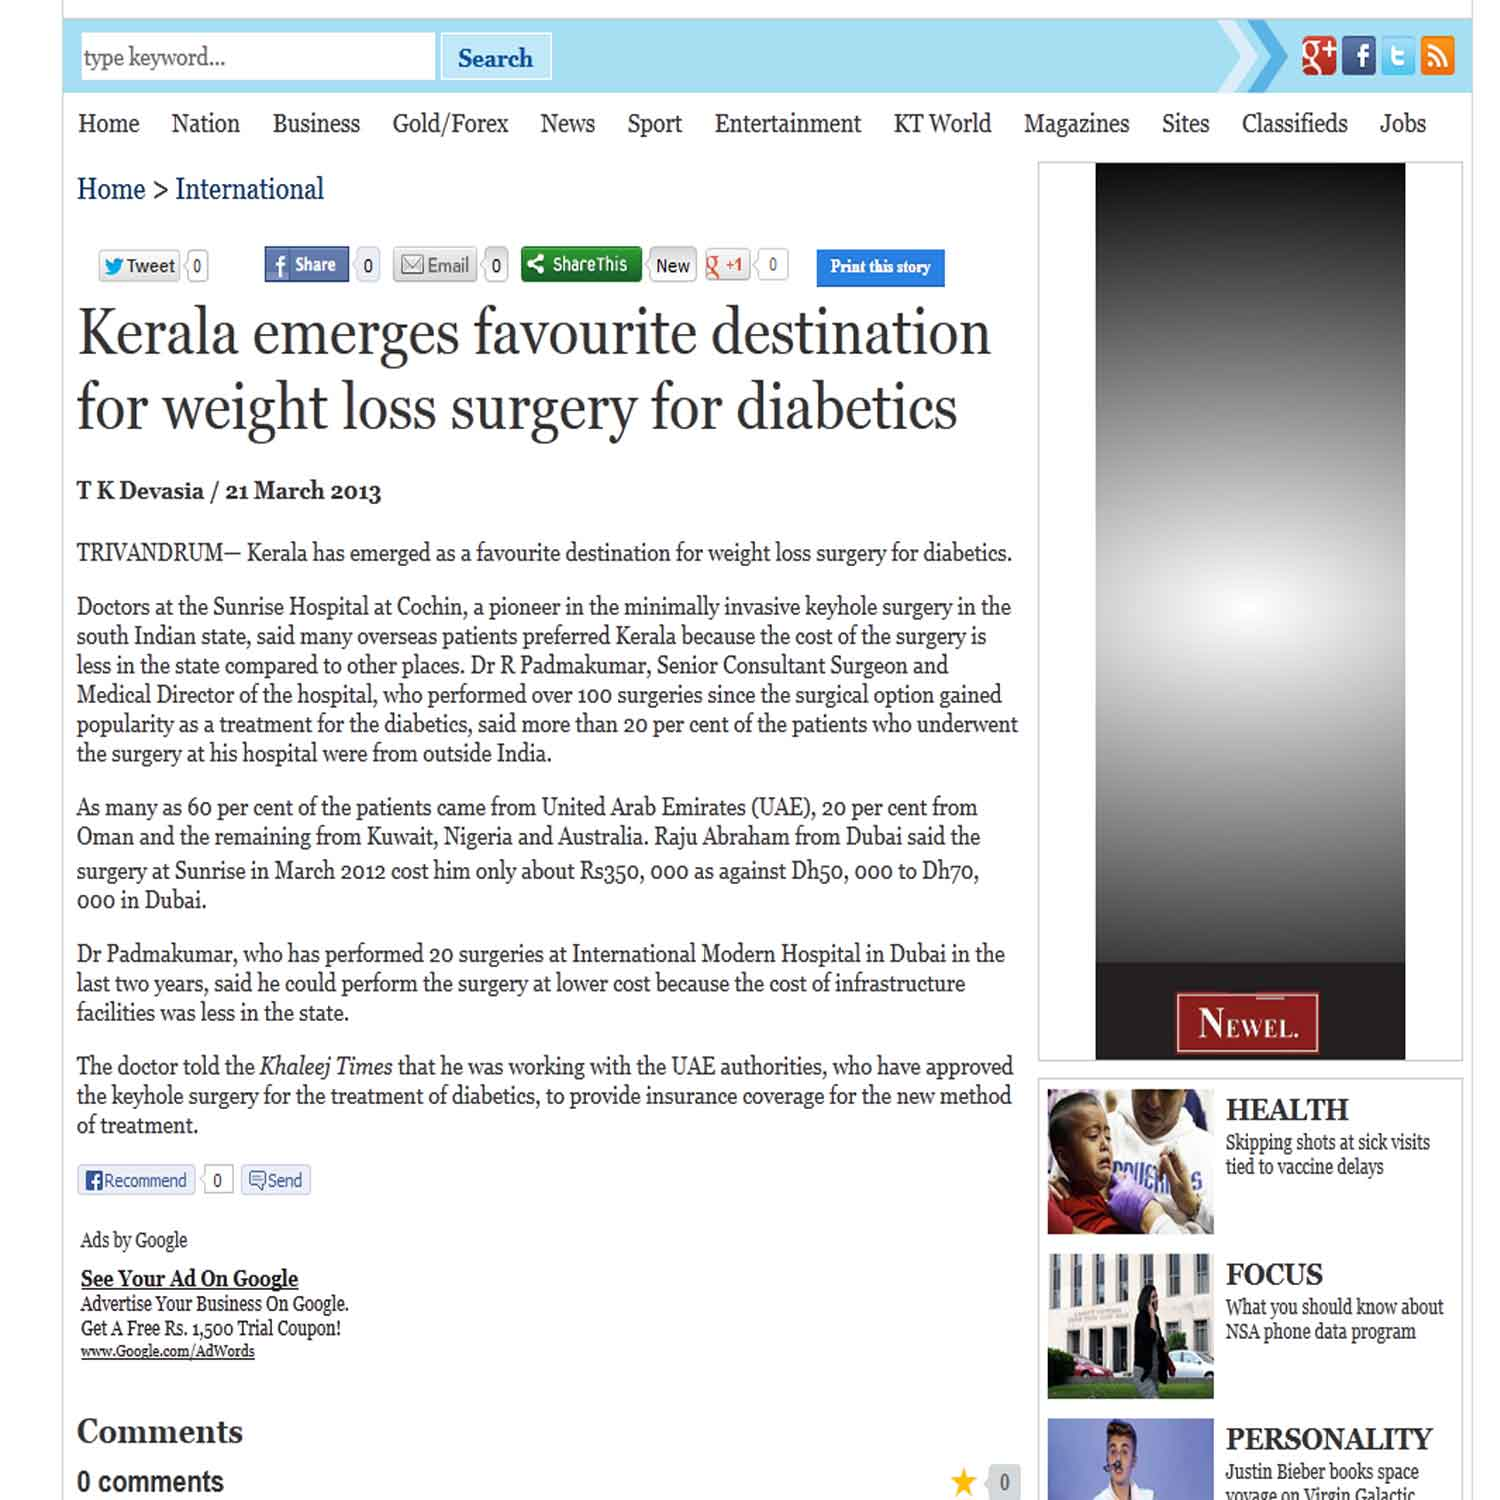 Kerala emerges favorite destination for weight loss surgery for diabetes